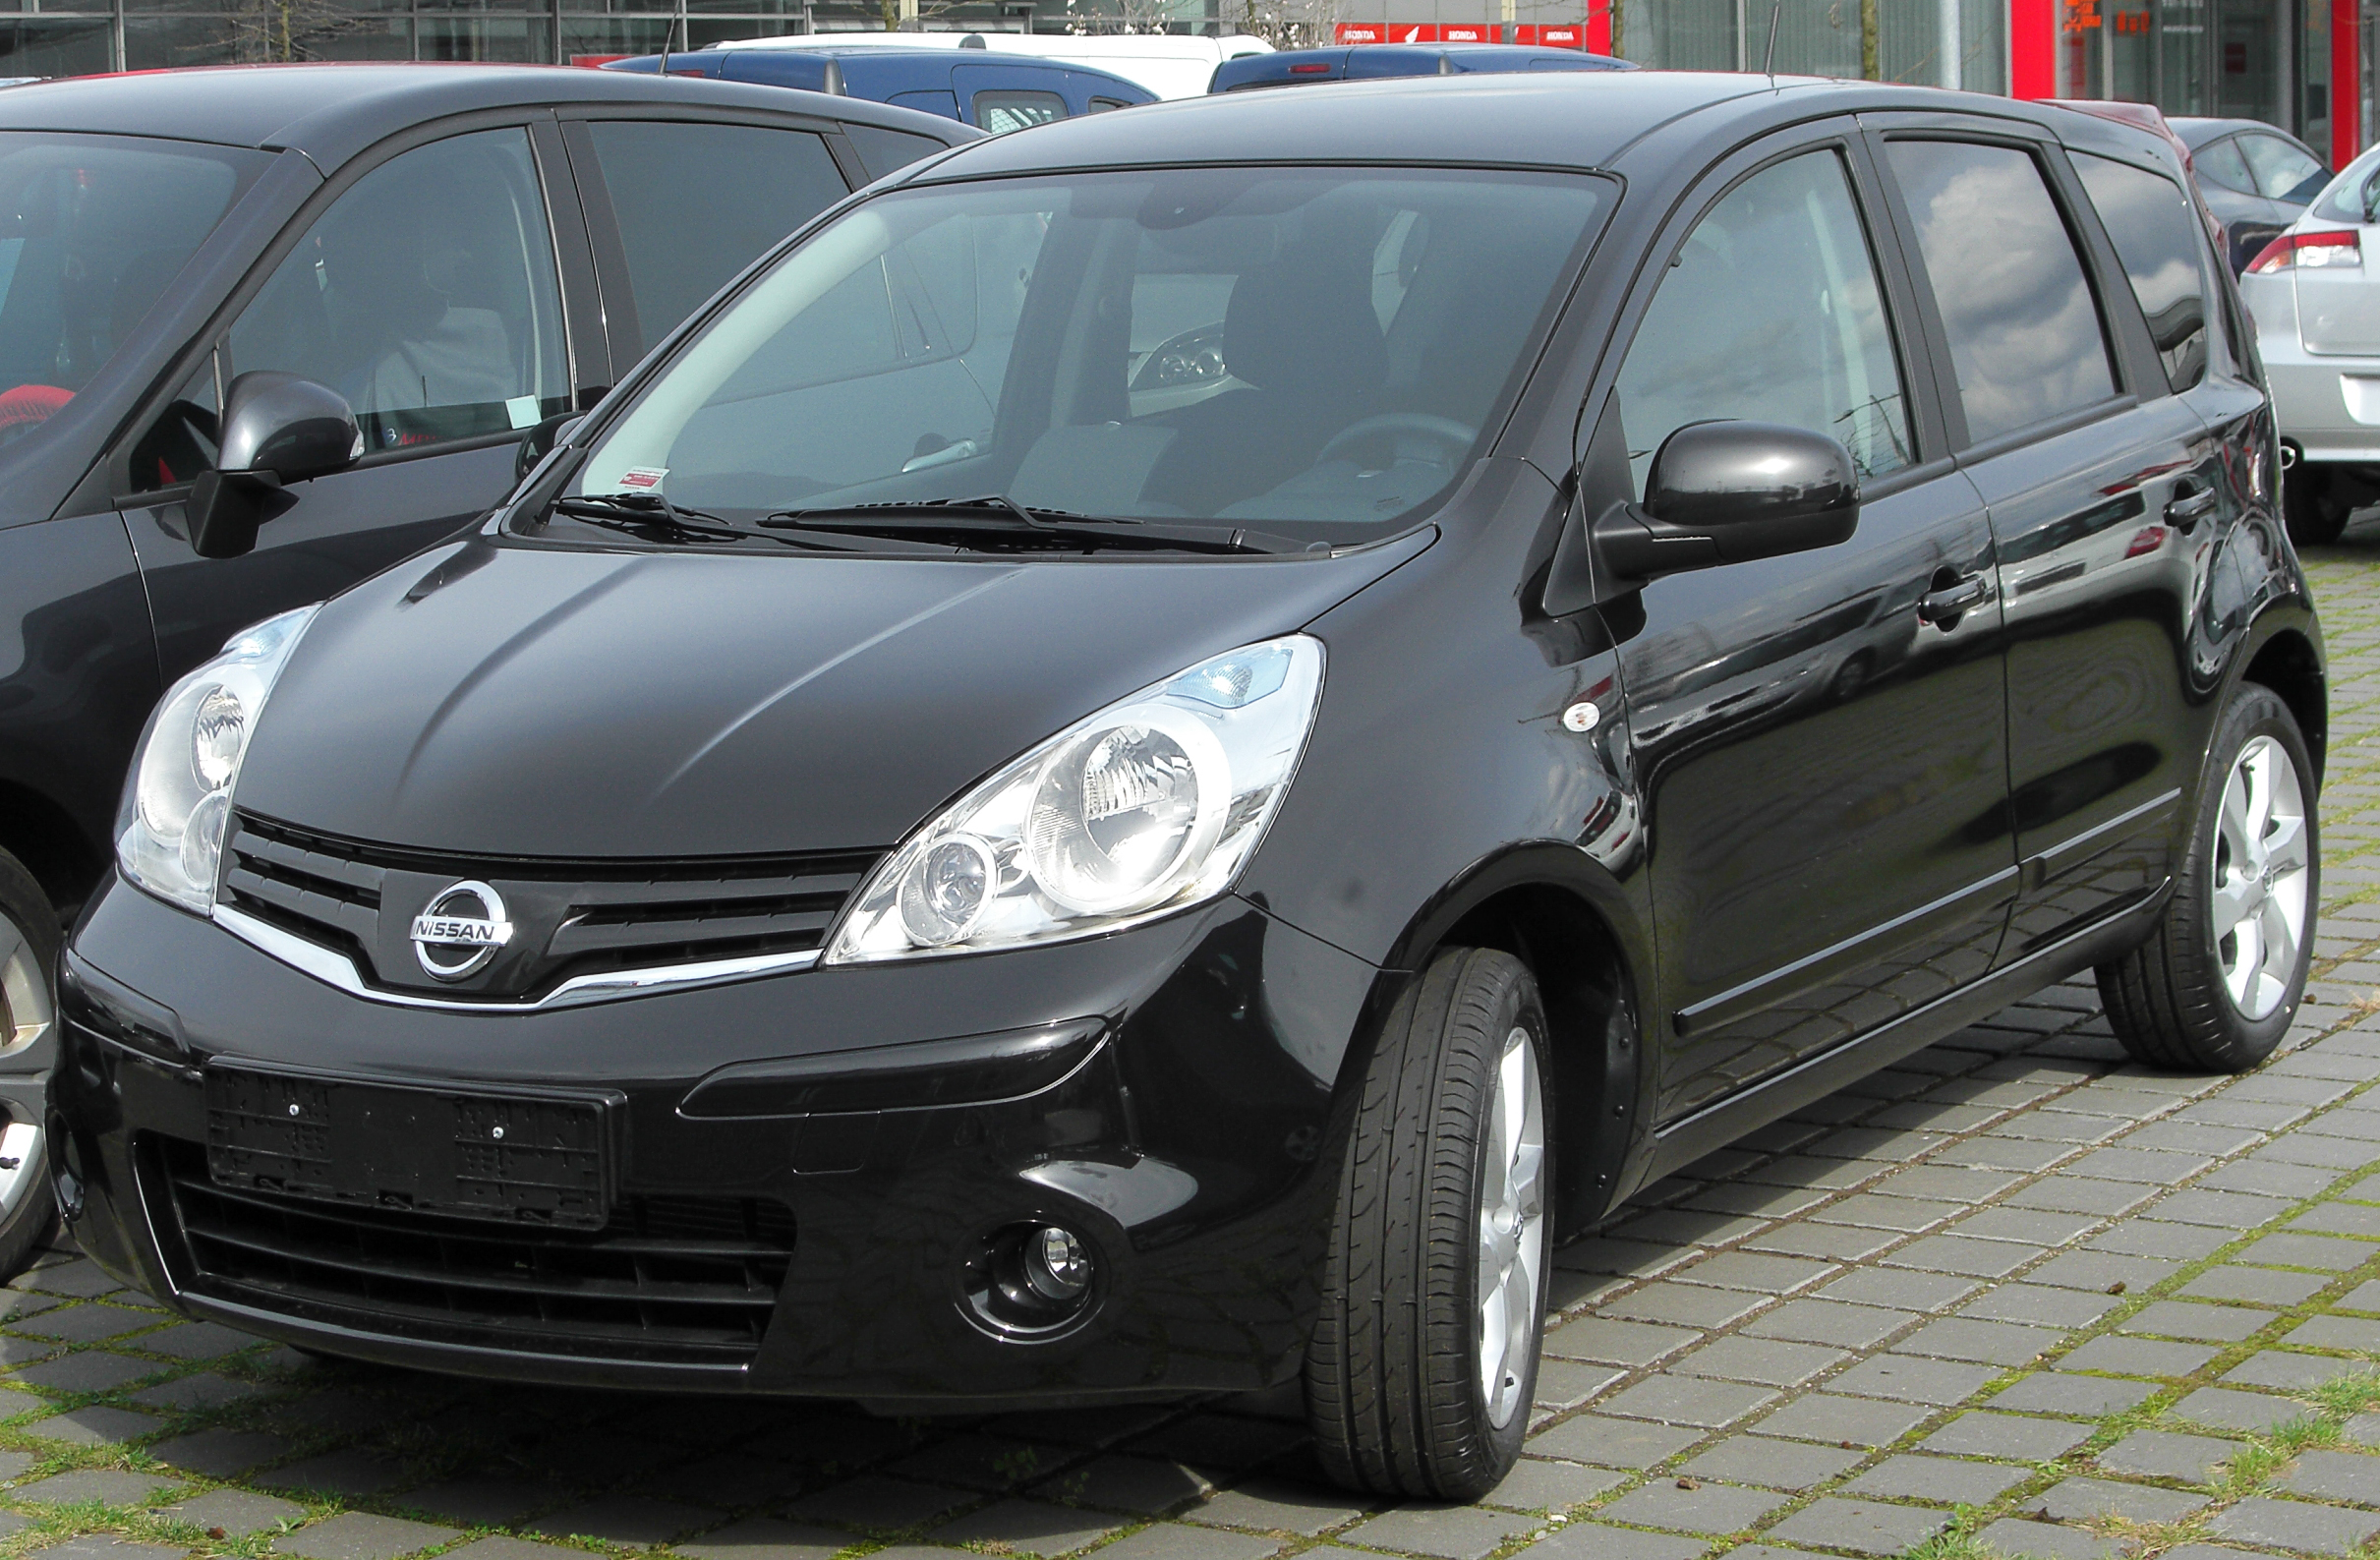 file nissan note facelift front wikimedia commons. Black Bedroom Furniture Sets. Home Design Ideas